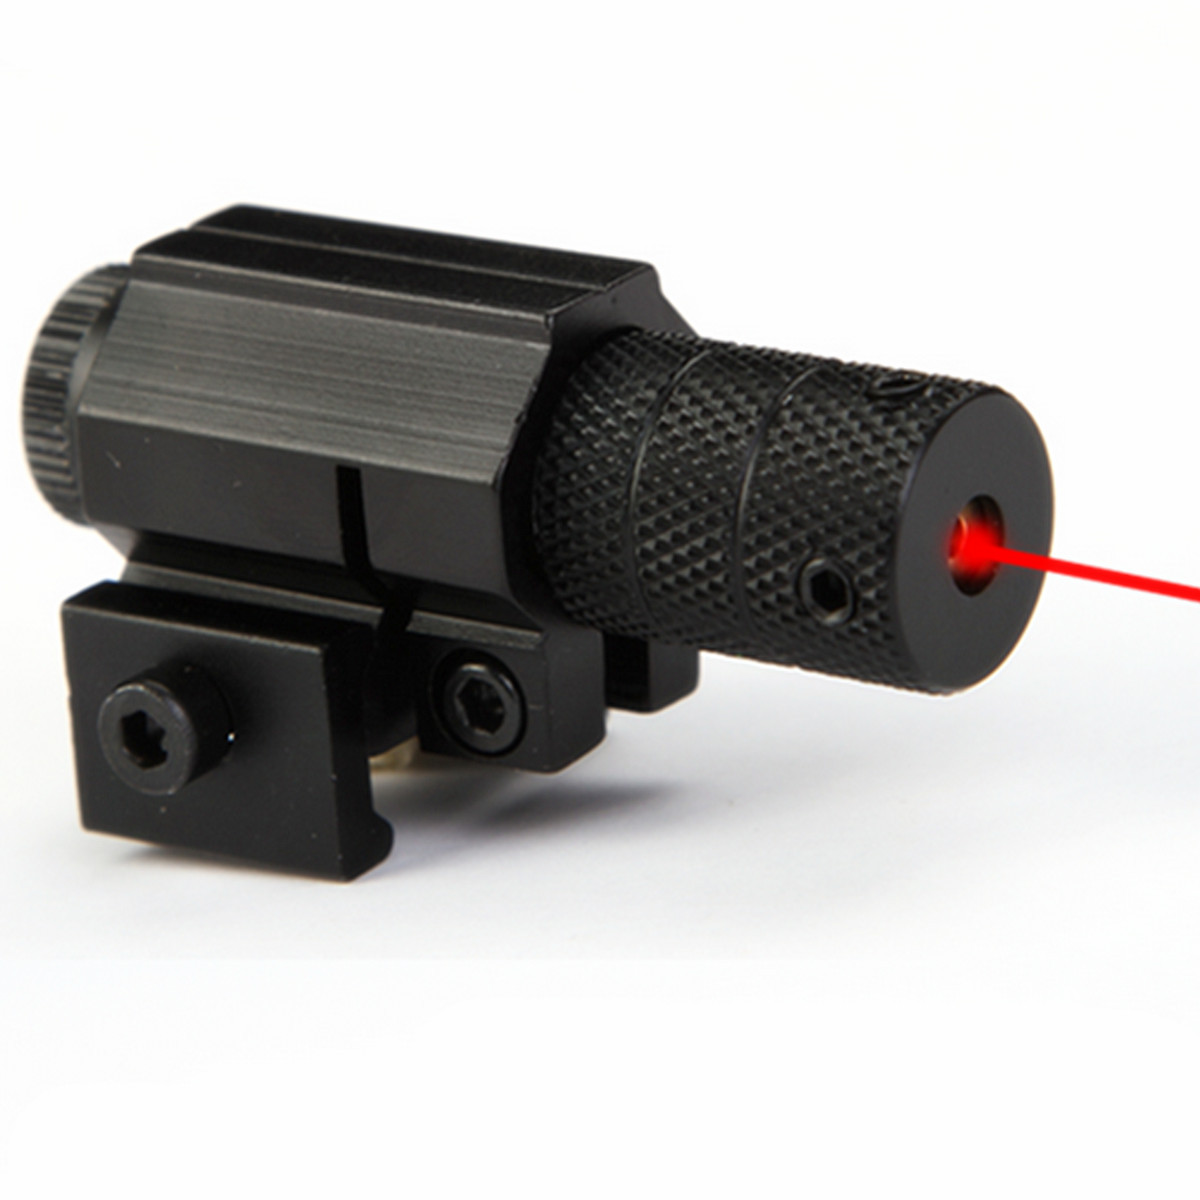 100m 835-655mm Tactical Aiming Red Beam Dot Laser Bore Sight Scope With Mount for Gun Rifle Pistol tactical 5mw 650nm red laser dot rifle scope sight for 20mm gun gauge black